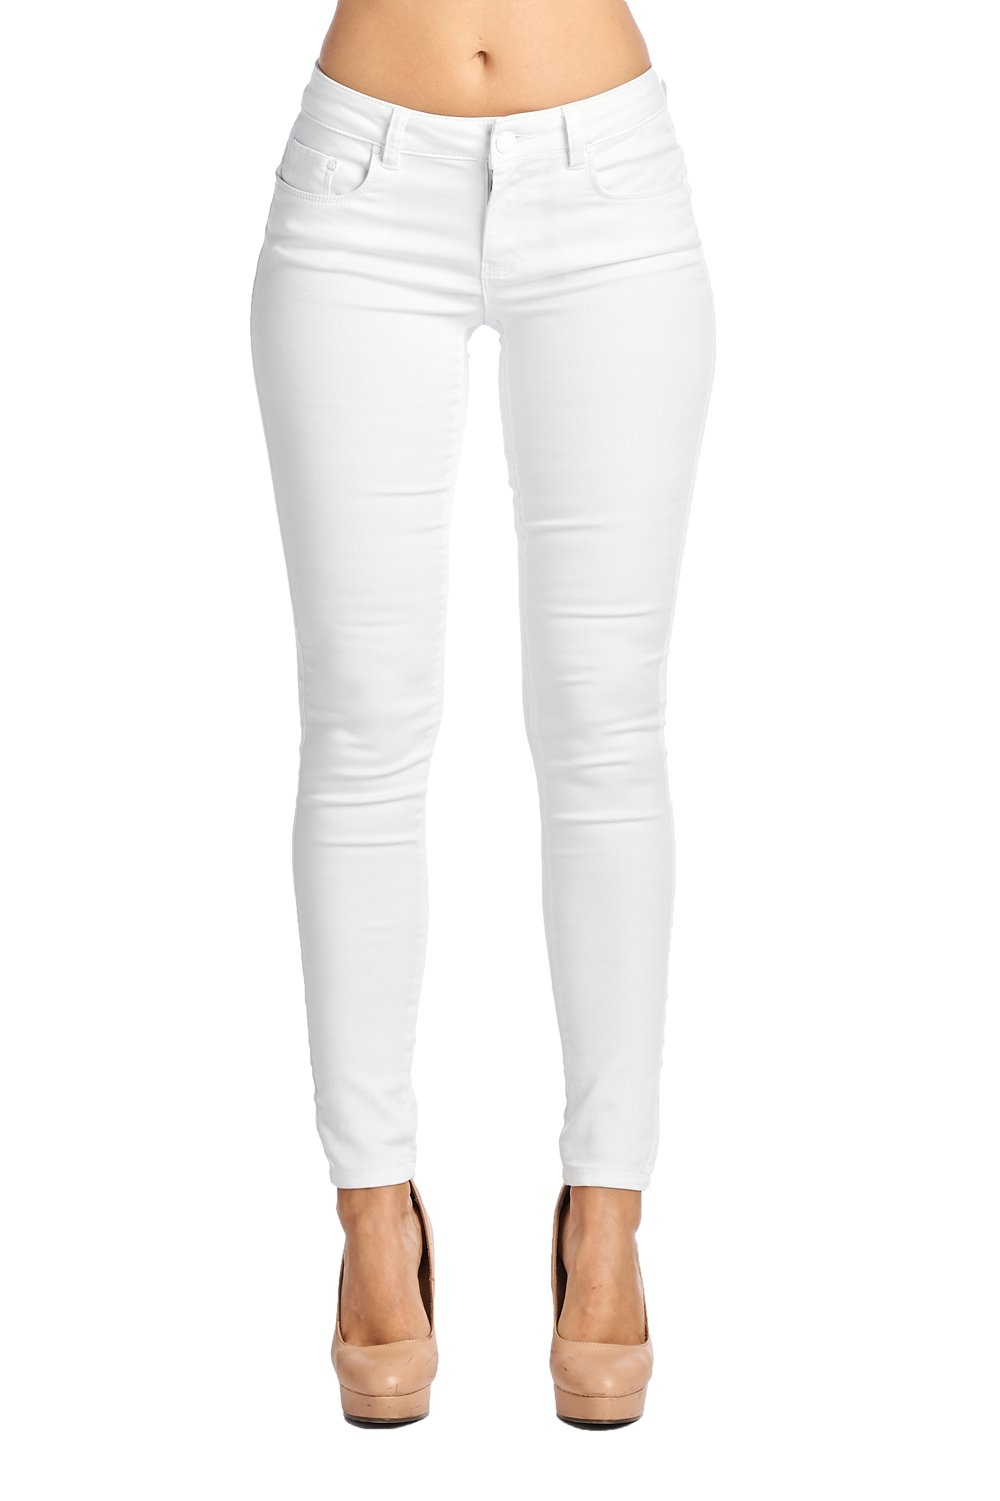 Blue Age Multistyle Denim and Cotton Skinny Jeans/Pants (11, JP1022_White)